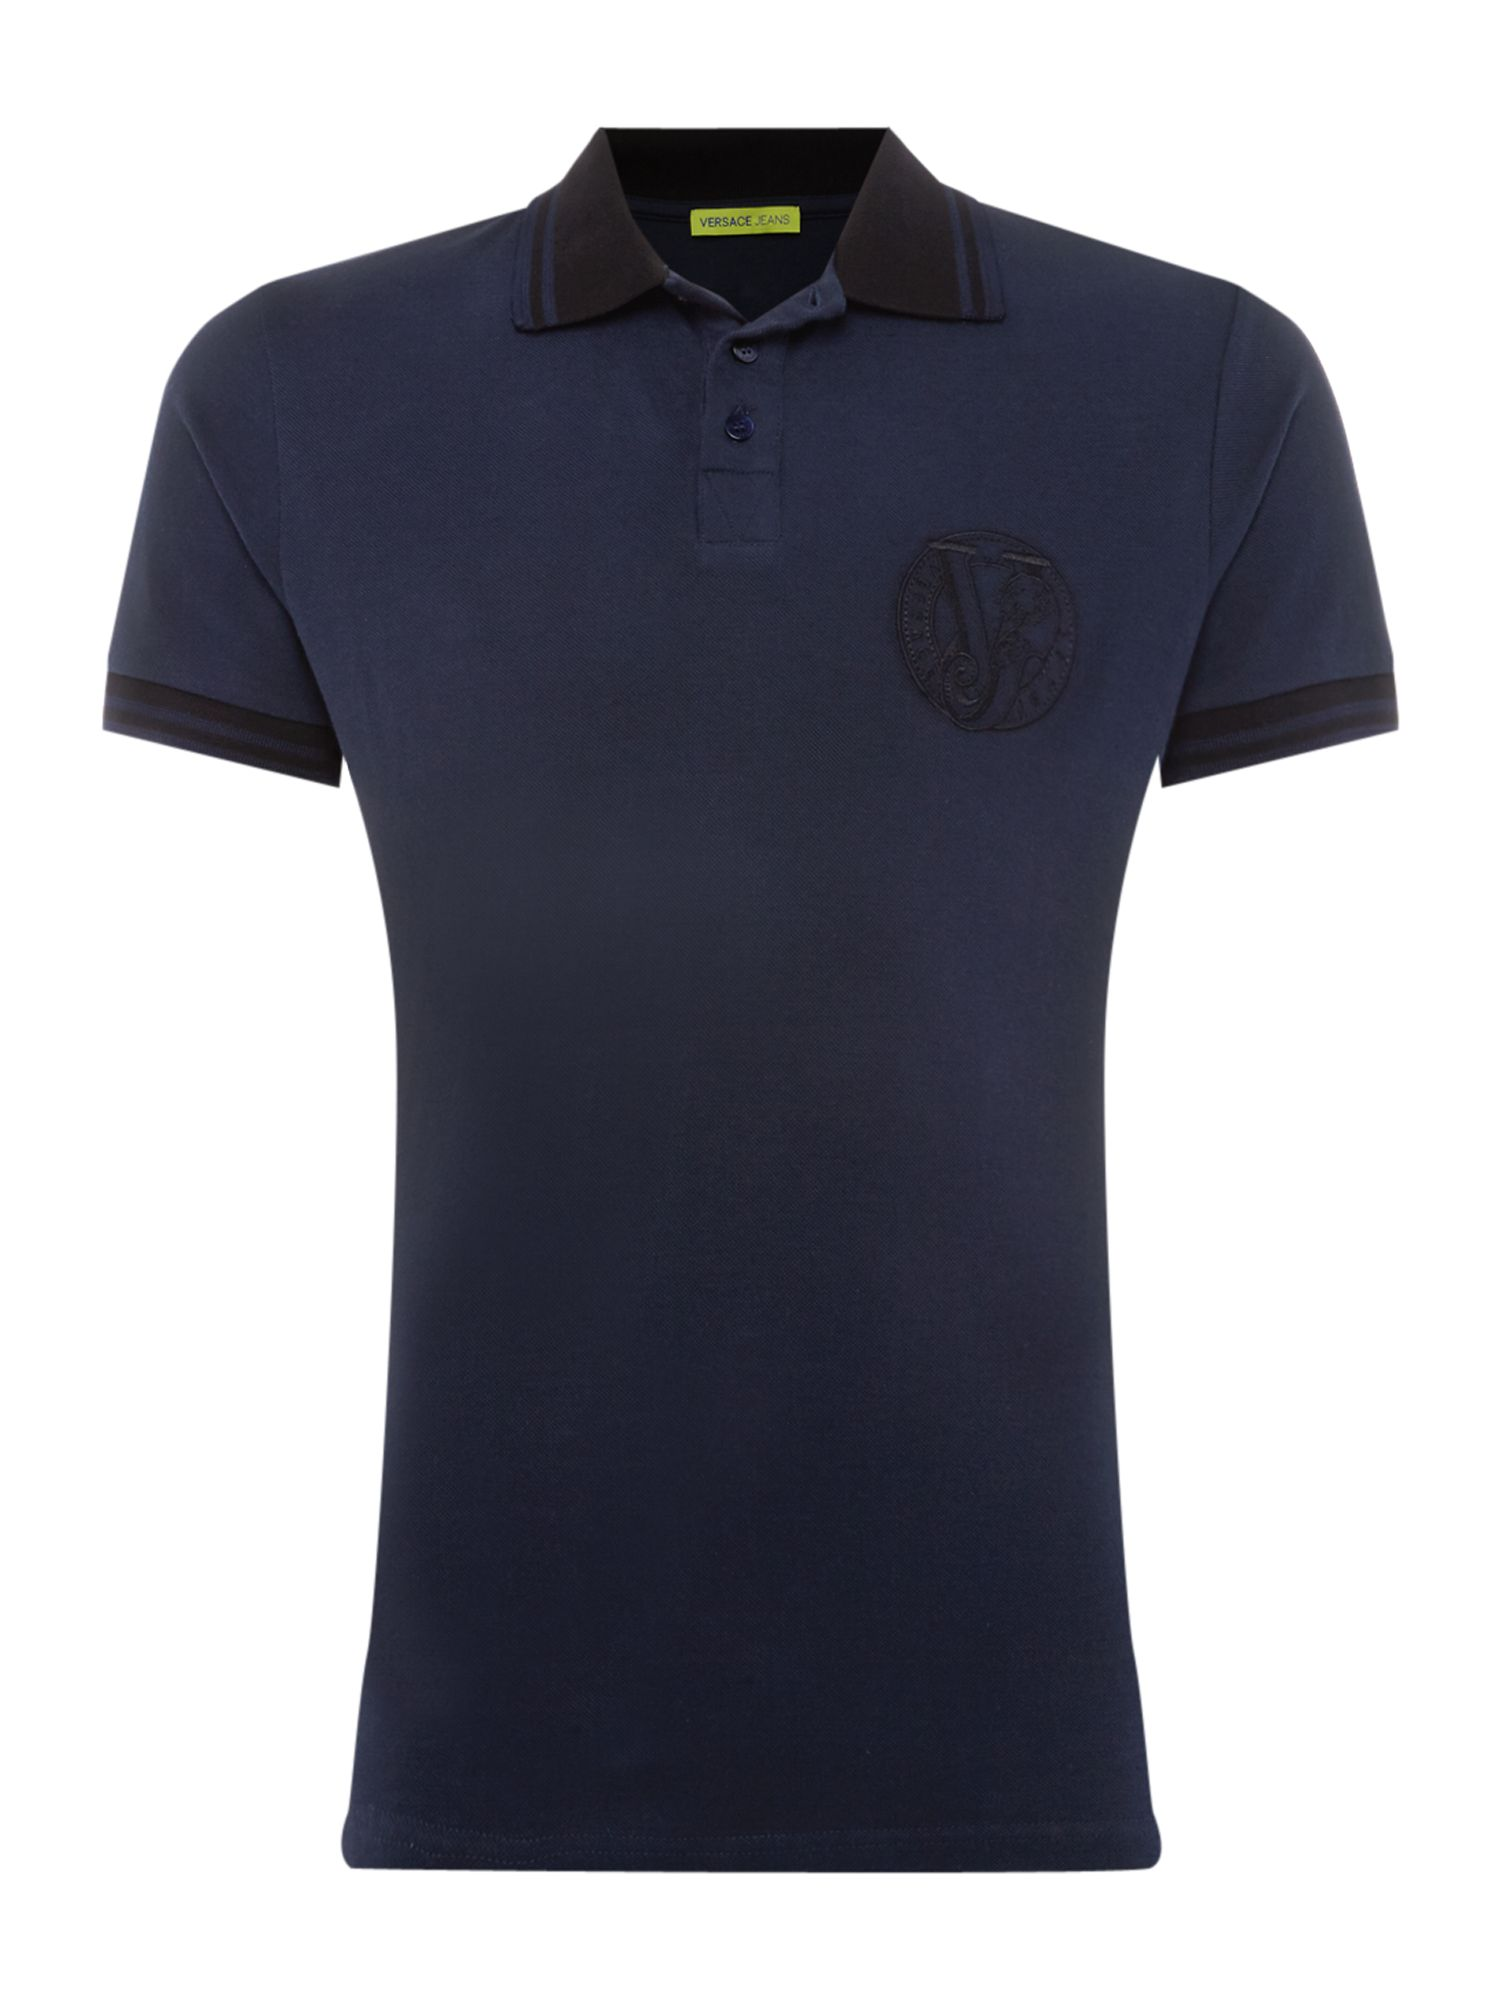 Men's Versace Jeans Tipped large logo polo shirt, Blue